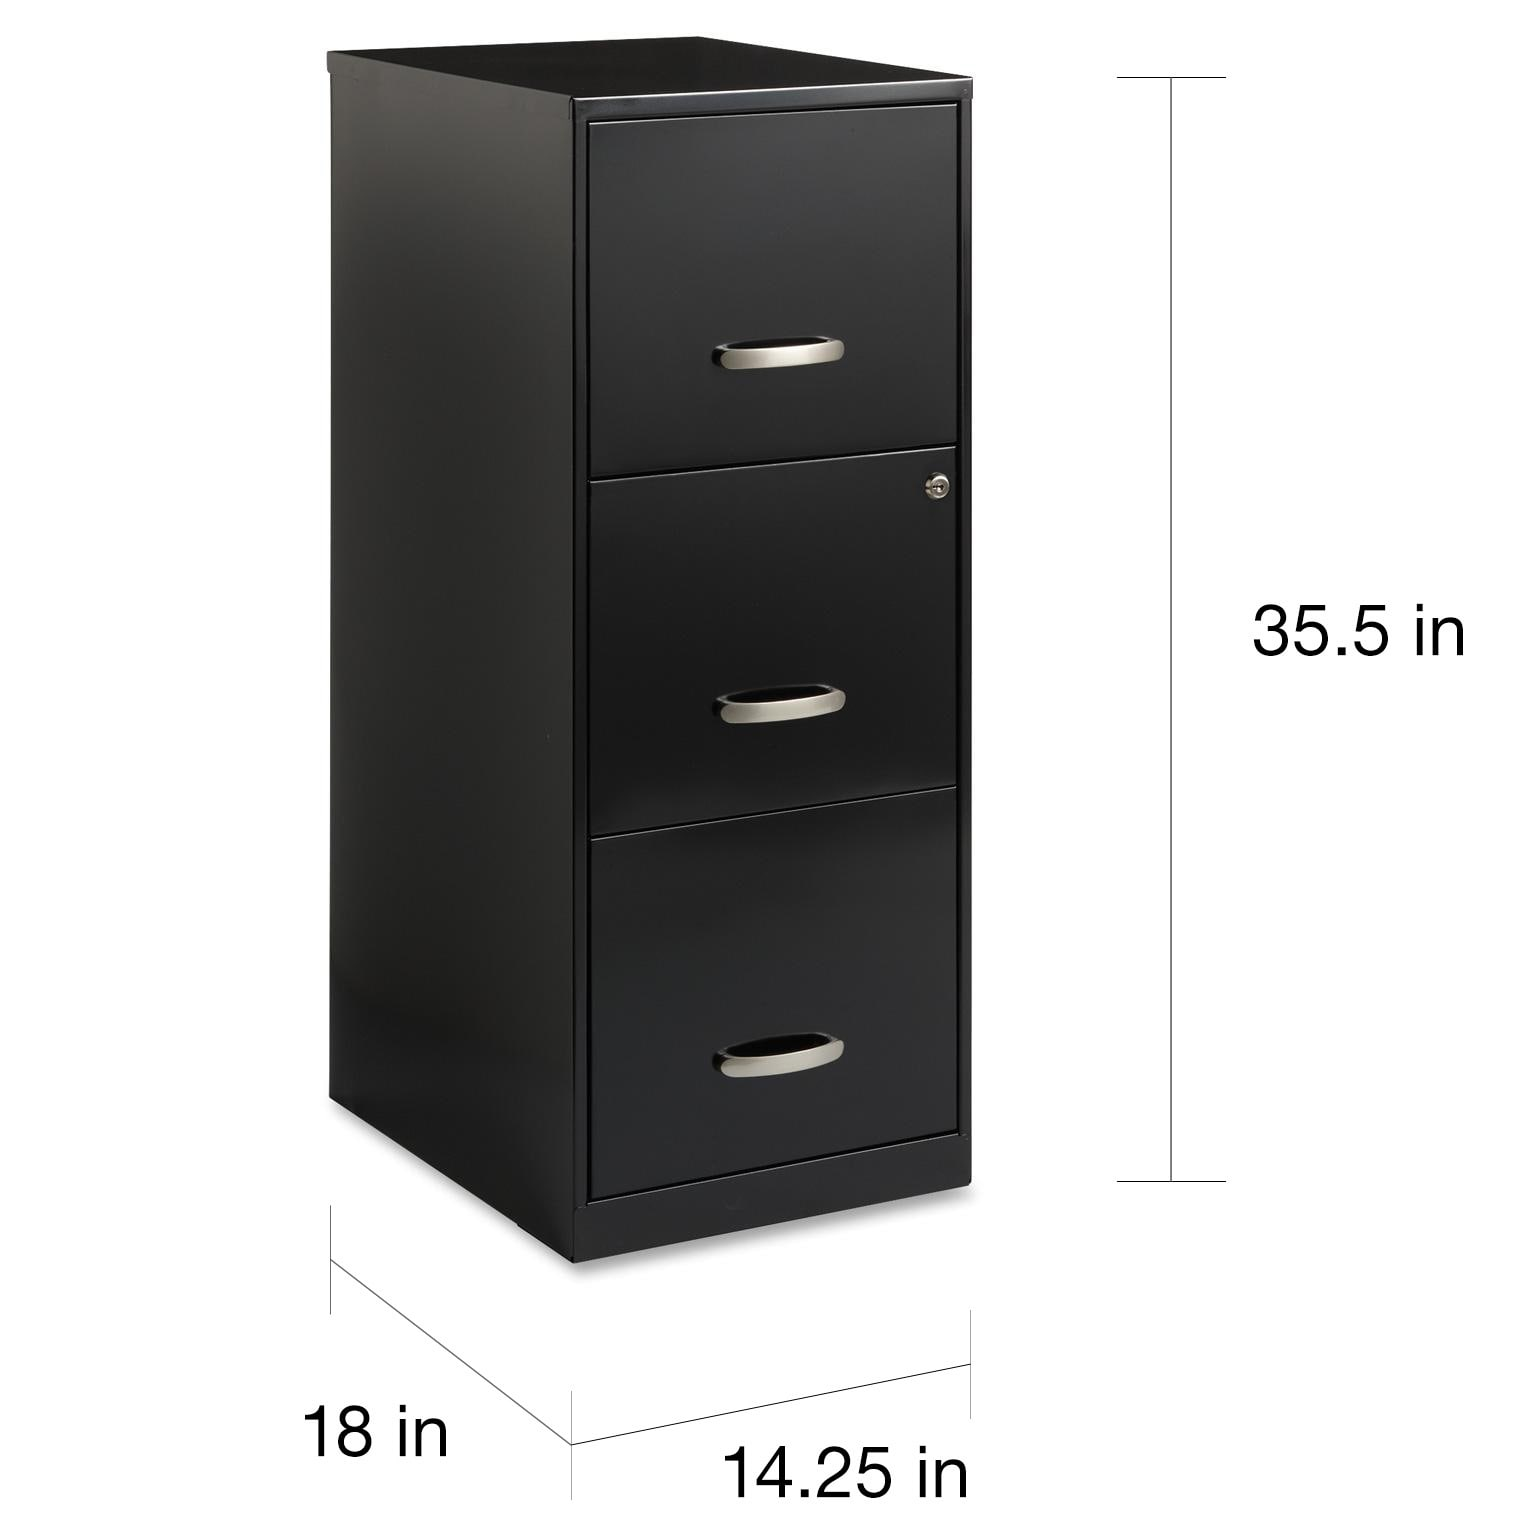 Space Solutions 3 Drawer Black Steel File Cabinet